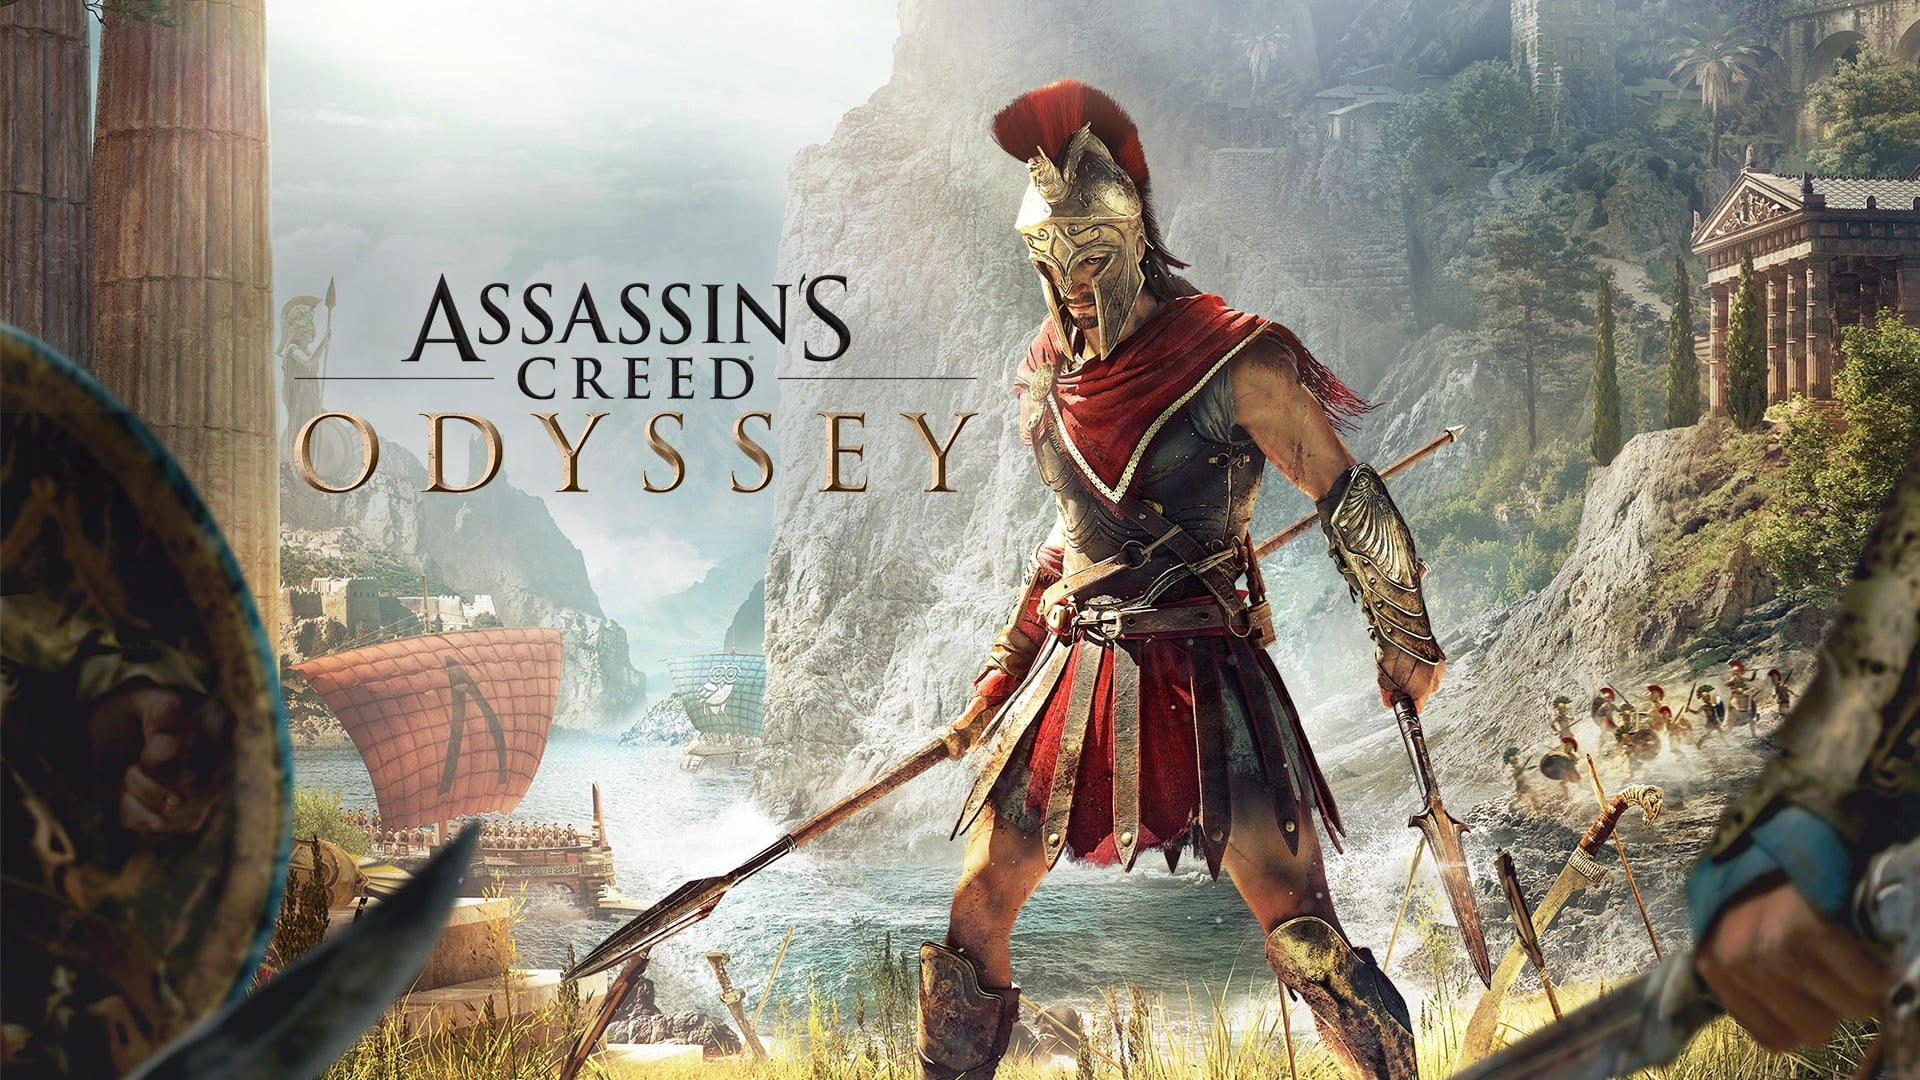 Assassin S Creed Odyssey New Lost Tale Of Greece Coming Soon